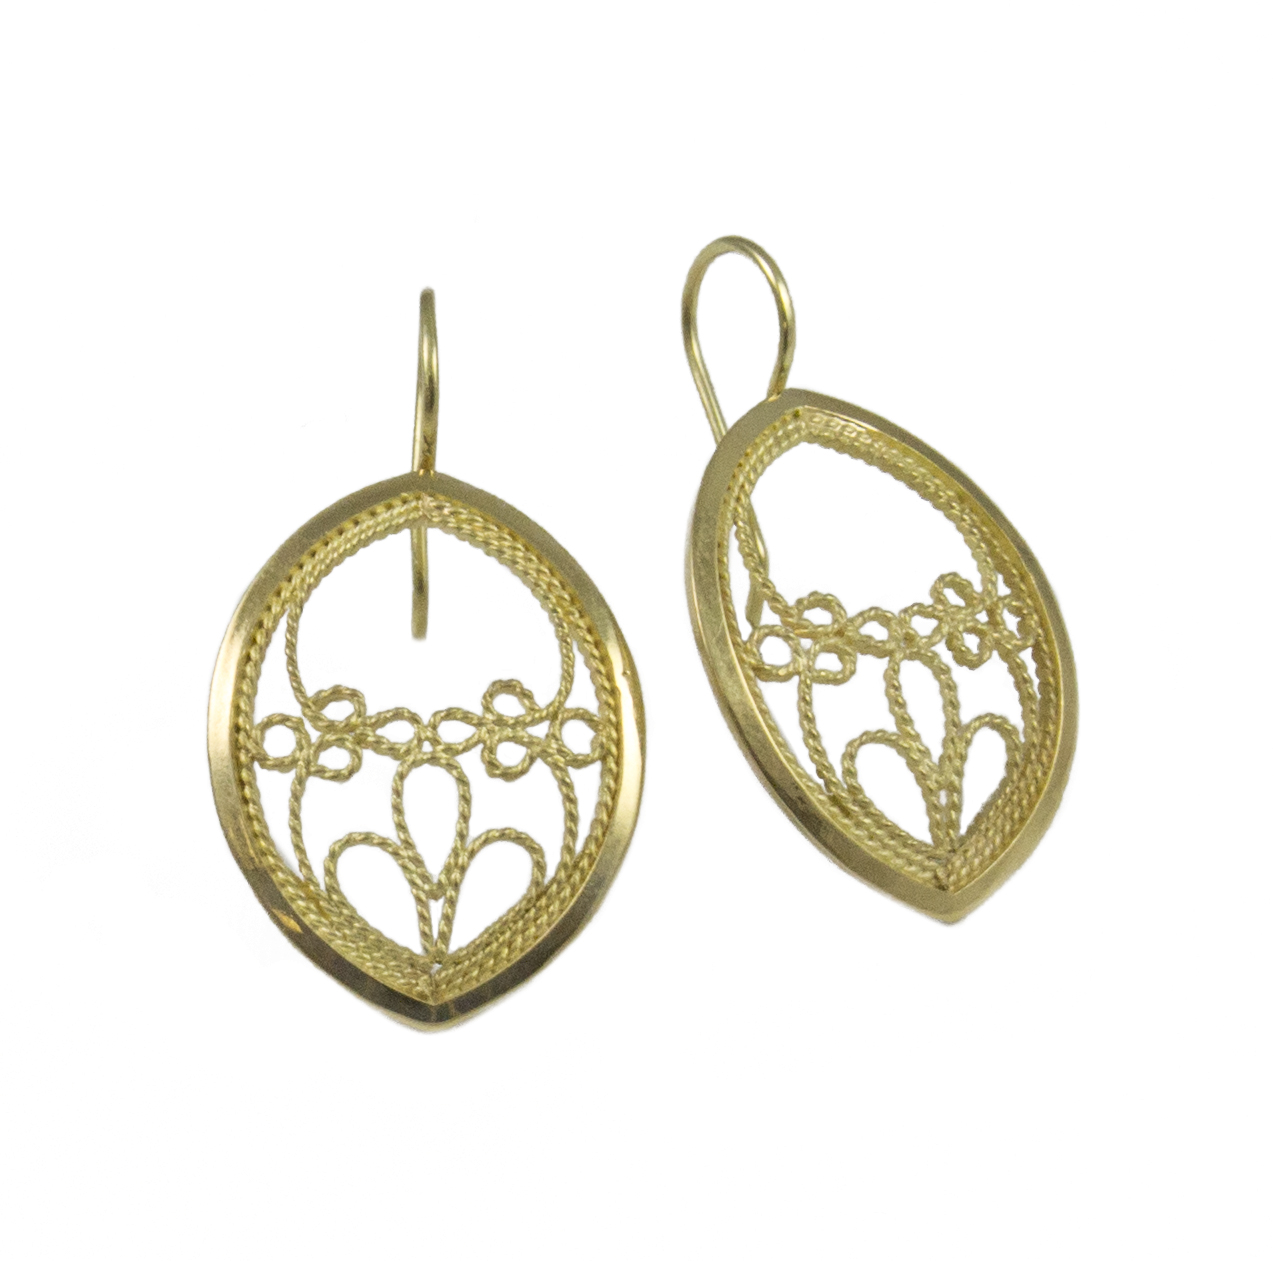 CarlyFiligreeEarrings18k.jpg